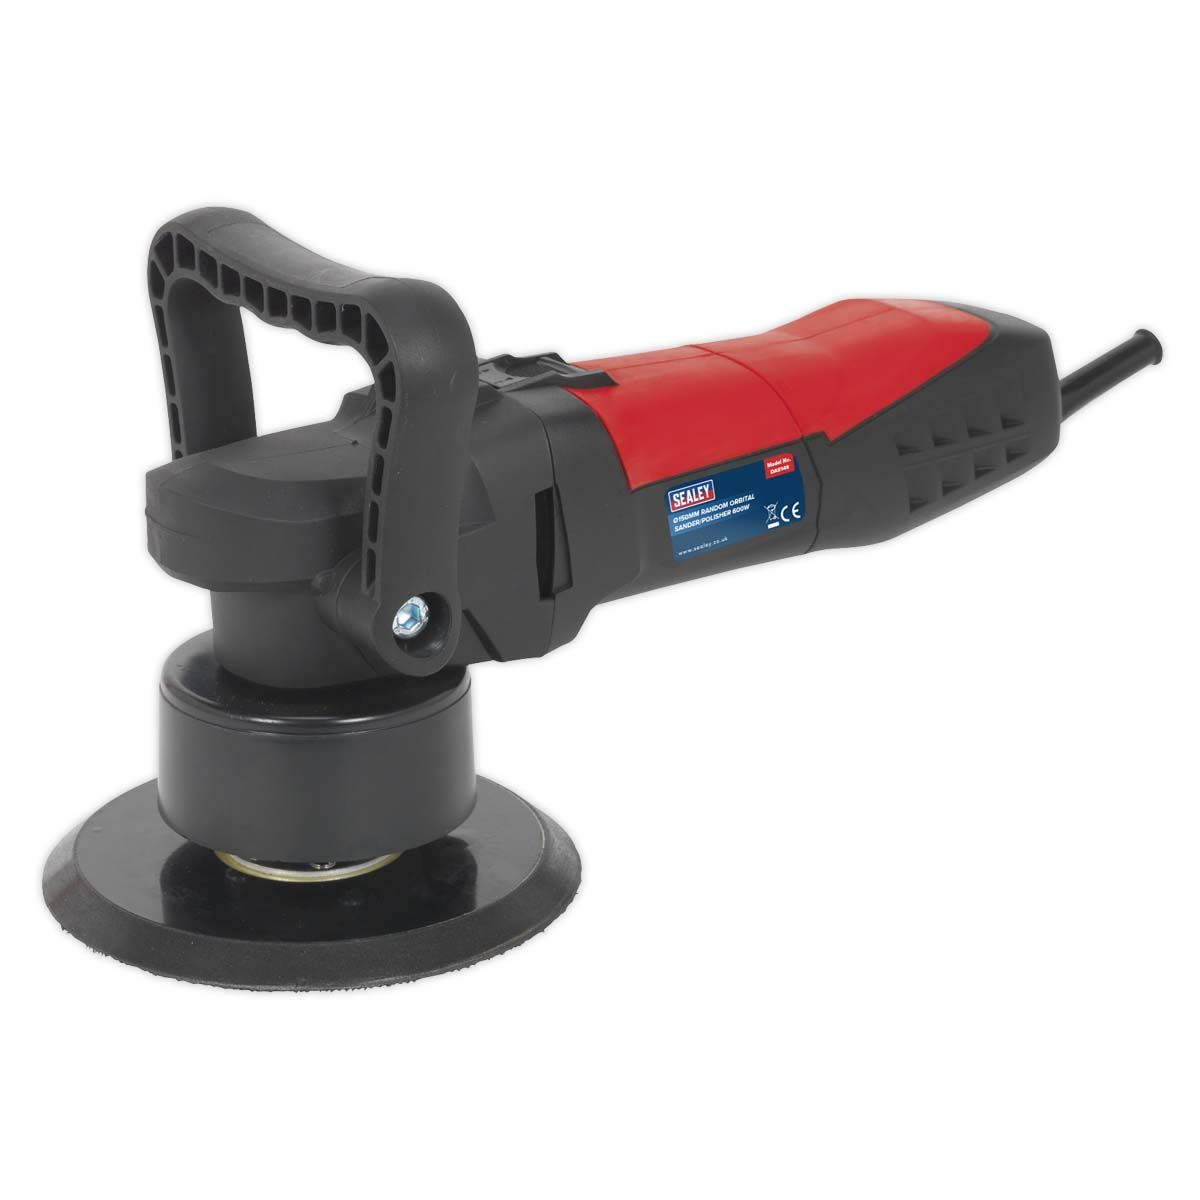 Sealey Random Orbital Dual Action Sander/Polisher Ø150mm 600W/230V